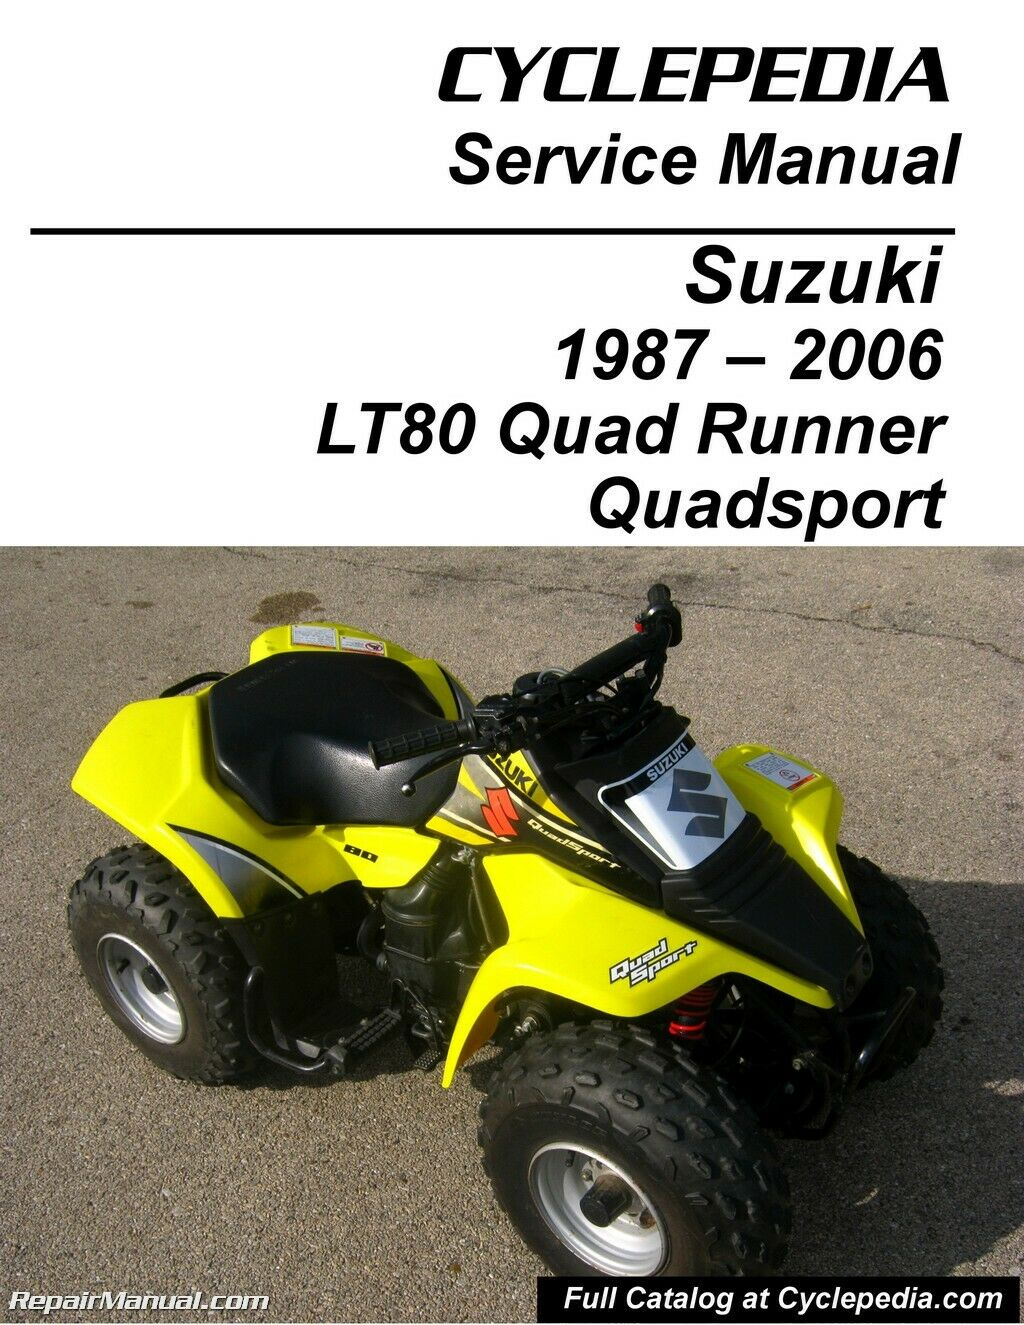 Suzuki LT80 Quadsport, Kawasaki KFX80 Cyclepedia Printed Service Manual 1  of 1Only 4 available ...